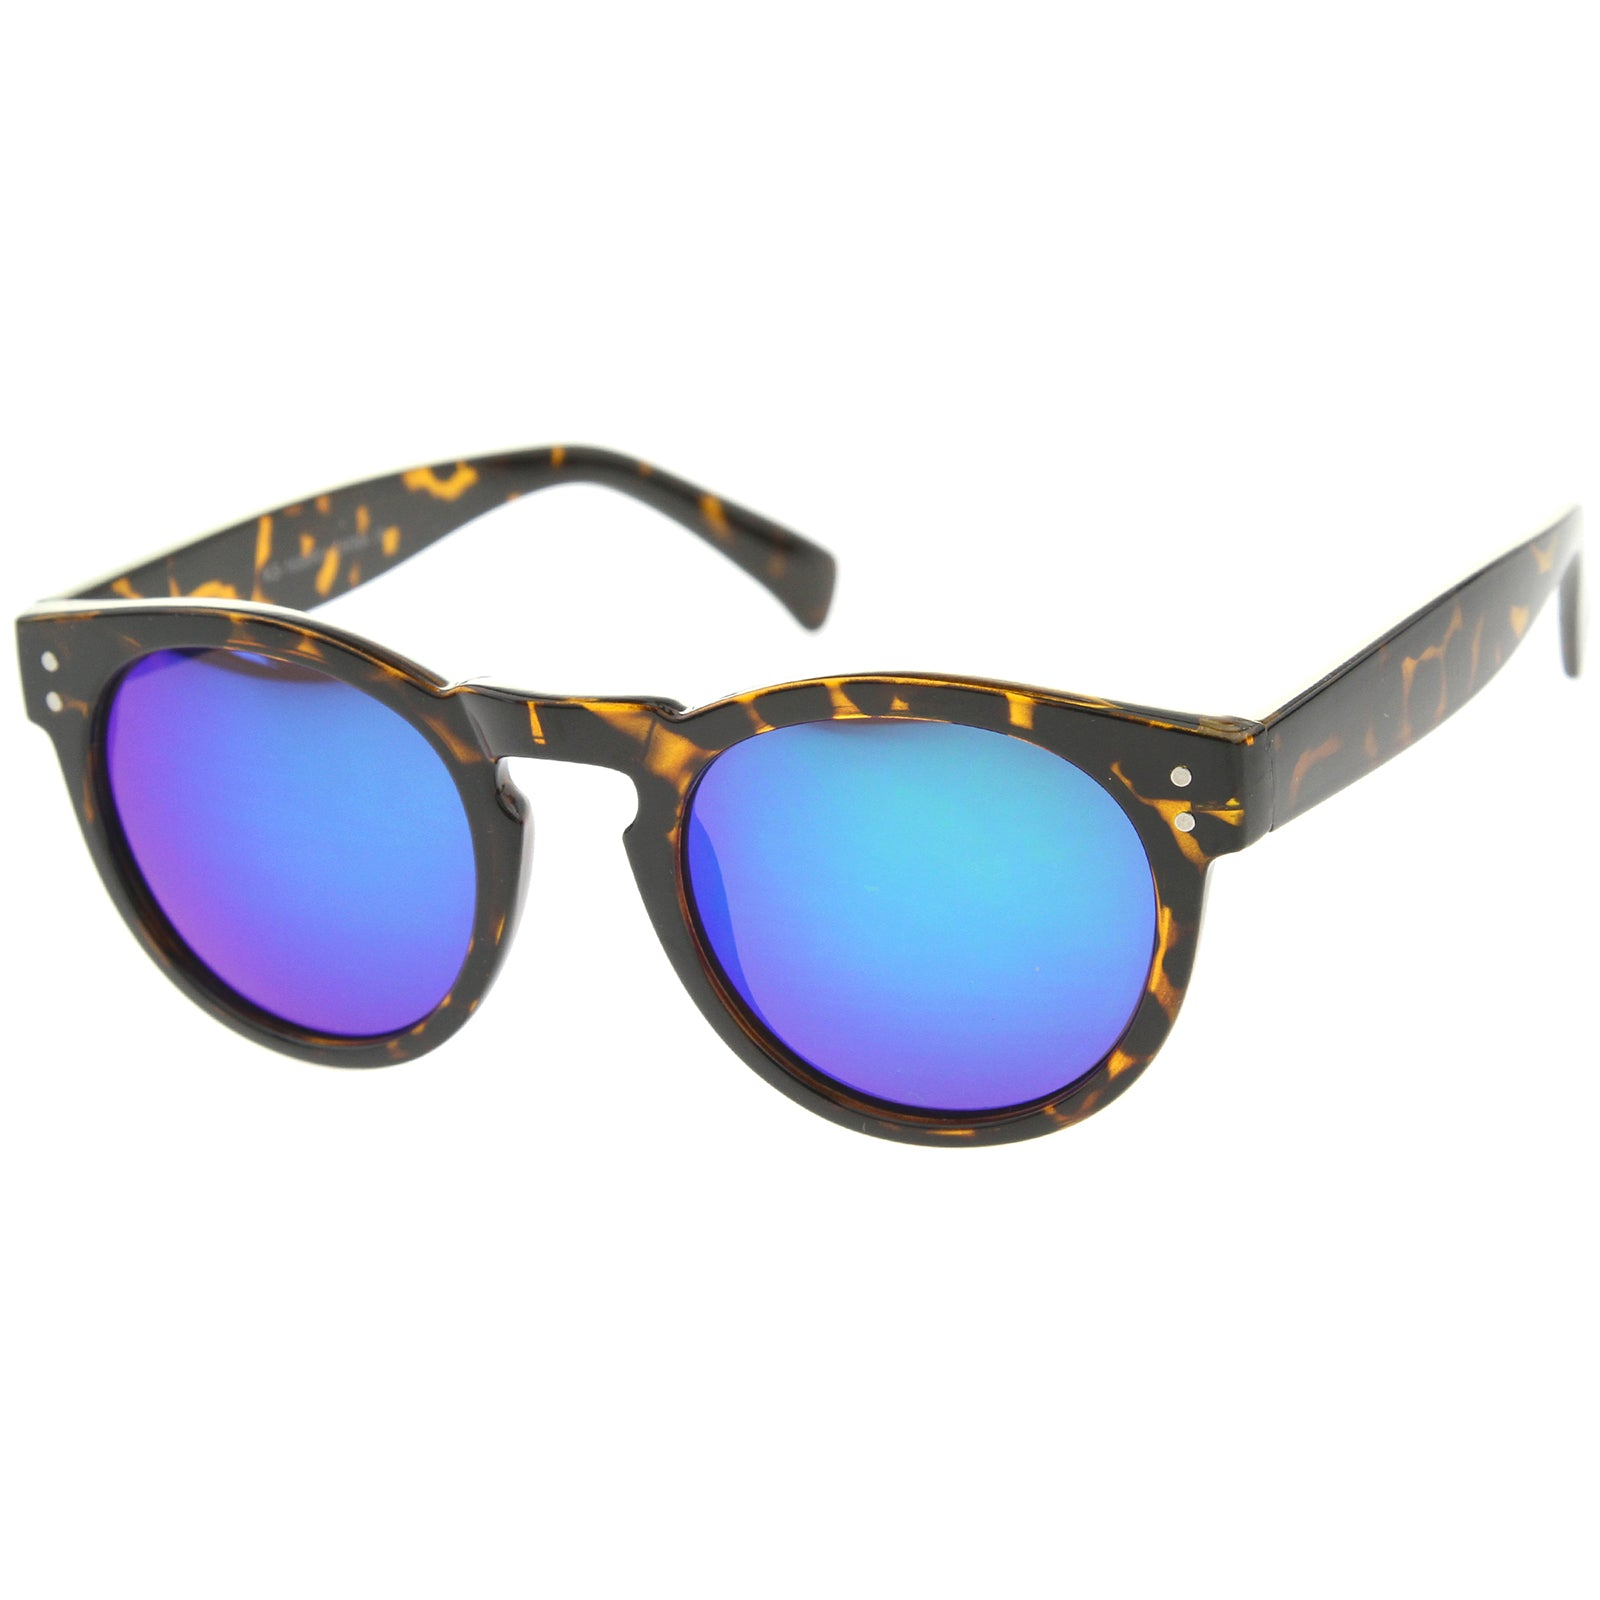 Womens Horn Rimmed Sunglasses With UV400 Protected Mirrored Lens - sunglass.la - 2